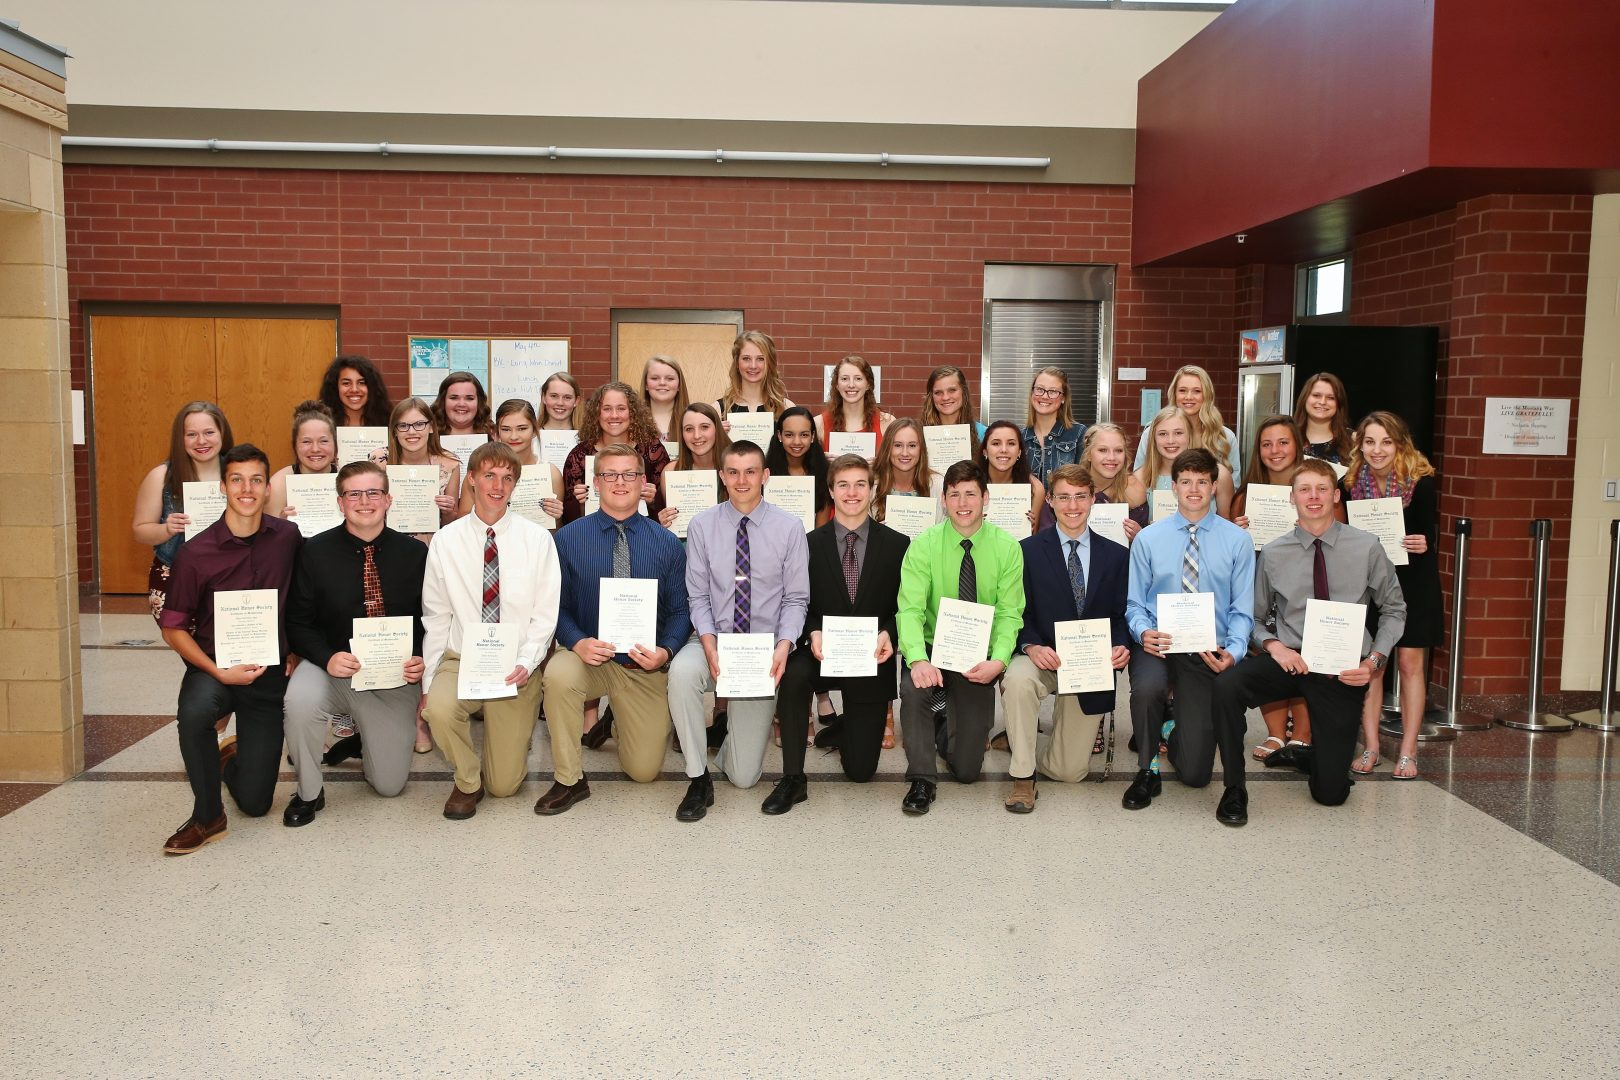 NHS inductees group photo